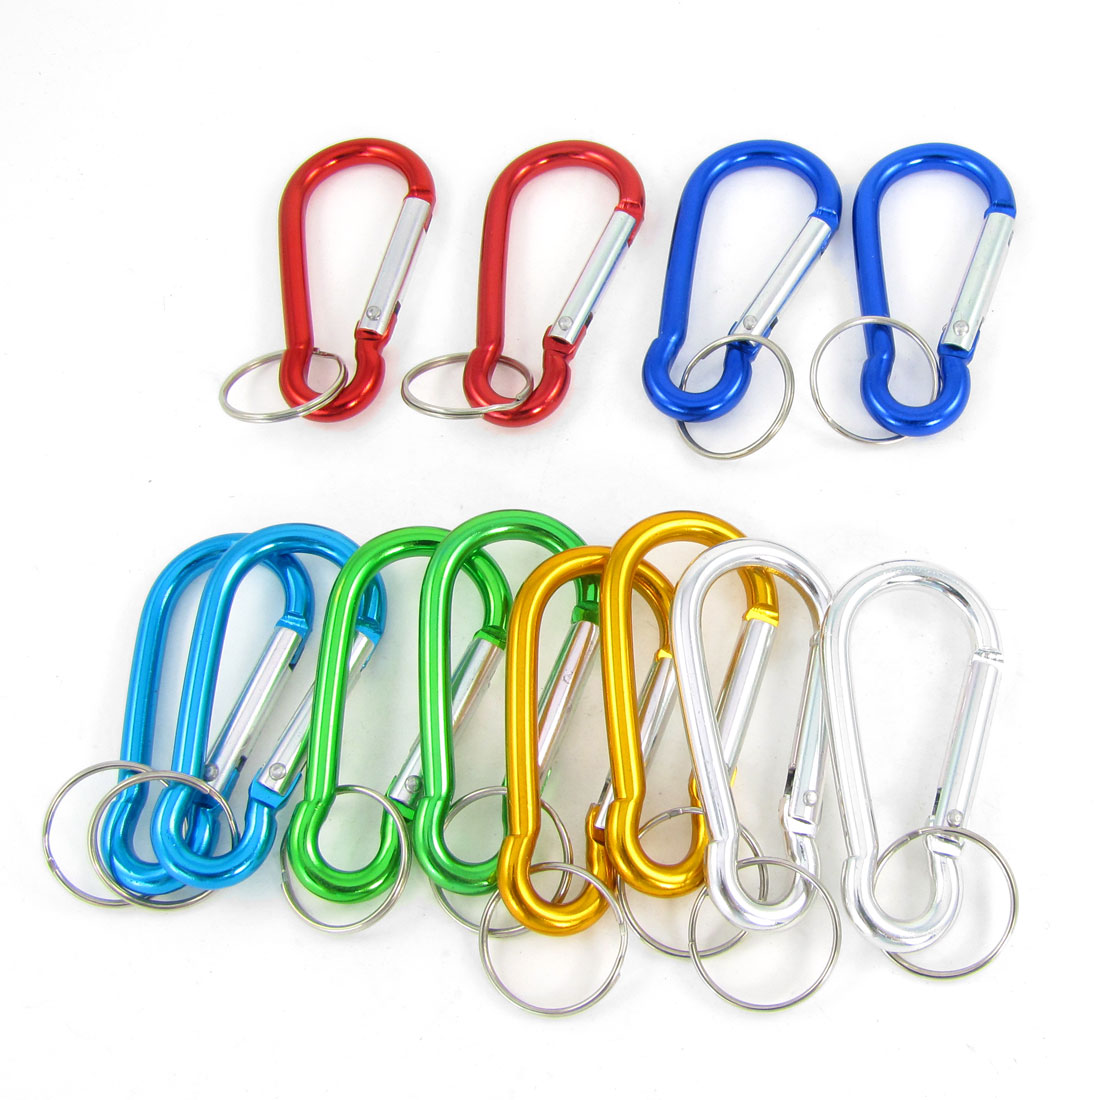 12 Pcs Assorted Color D Shaped Aluminum Alloy Snap Clip Carabiner Hooks